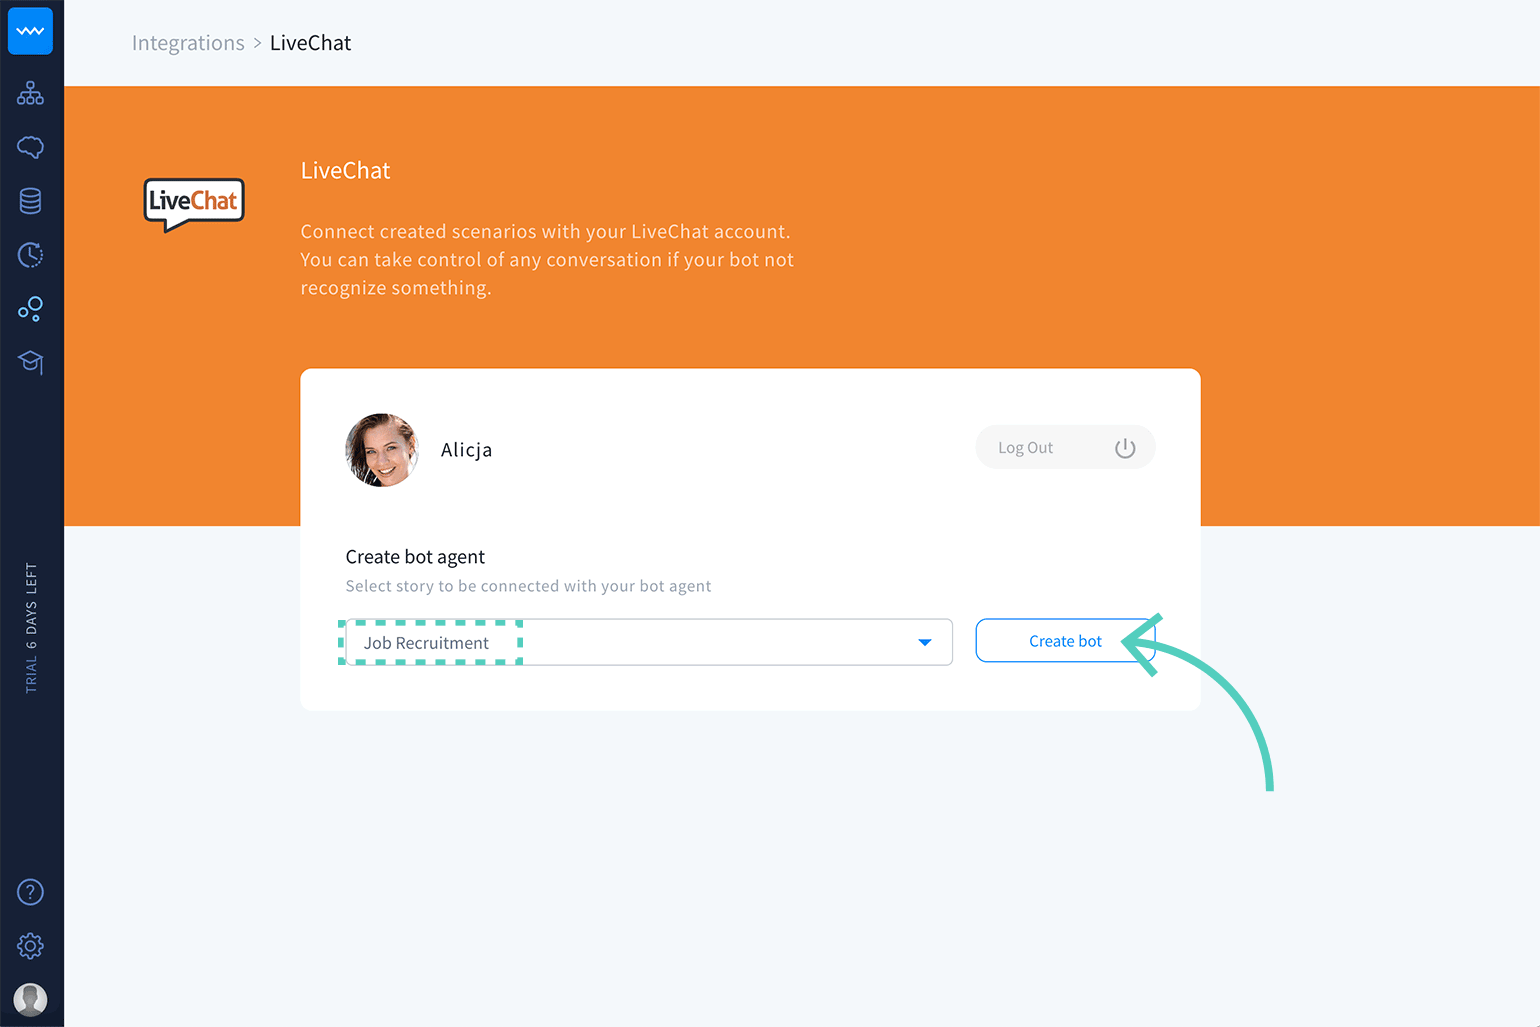 Create a bot in LiveChat